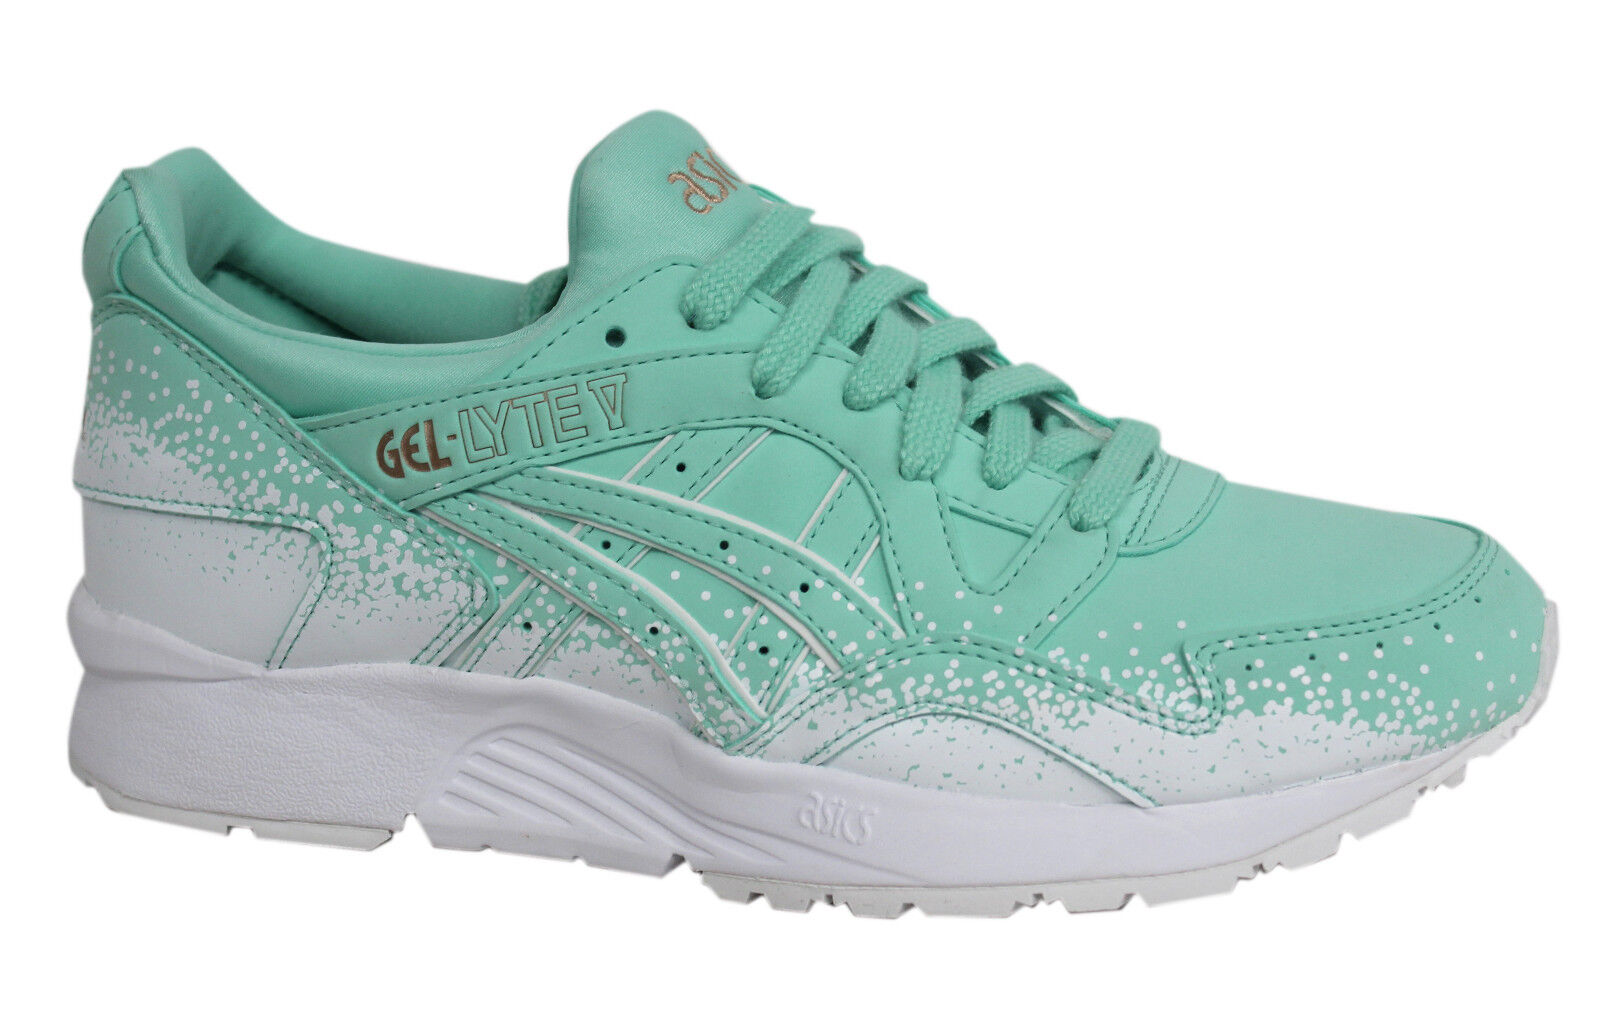 Asics Gel-Lyte V Lace Up White Mint Womens Trainers H6S6Y 7676 D71